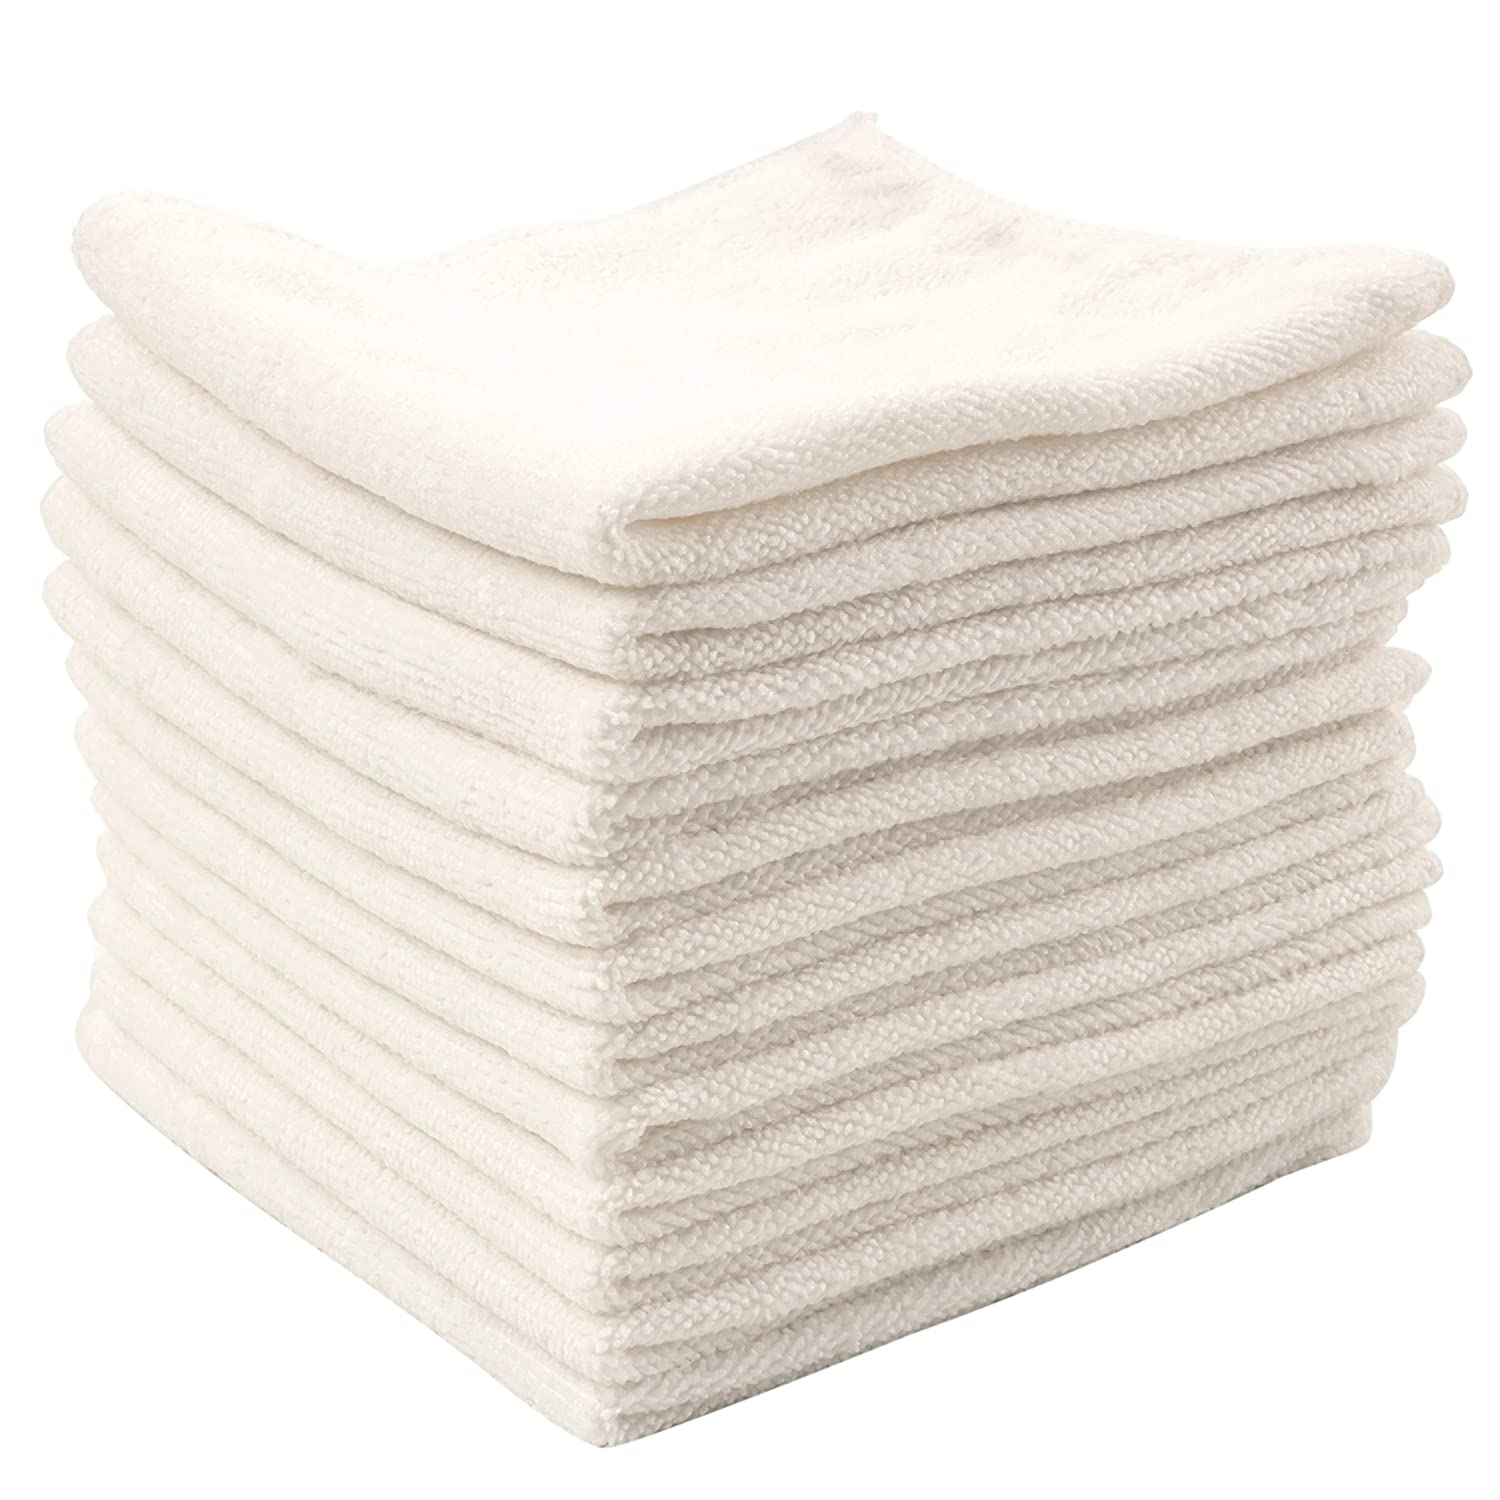 Dry Rite Best Magic Microfiber Cloth - Professional Series Cleaning Towels for Fine Auto Finishes, Interior, Chrome, Kitchen, Bath, TV, Glass- Non Scratching, Streak Free, Use Wet or Dry - 12 x 12 MCT-12B